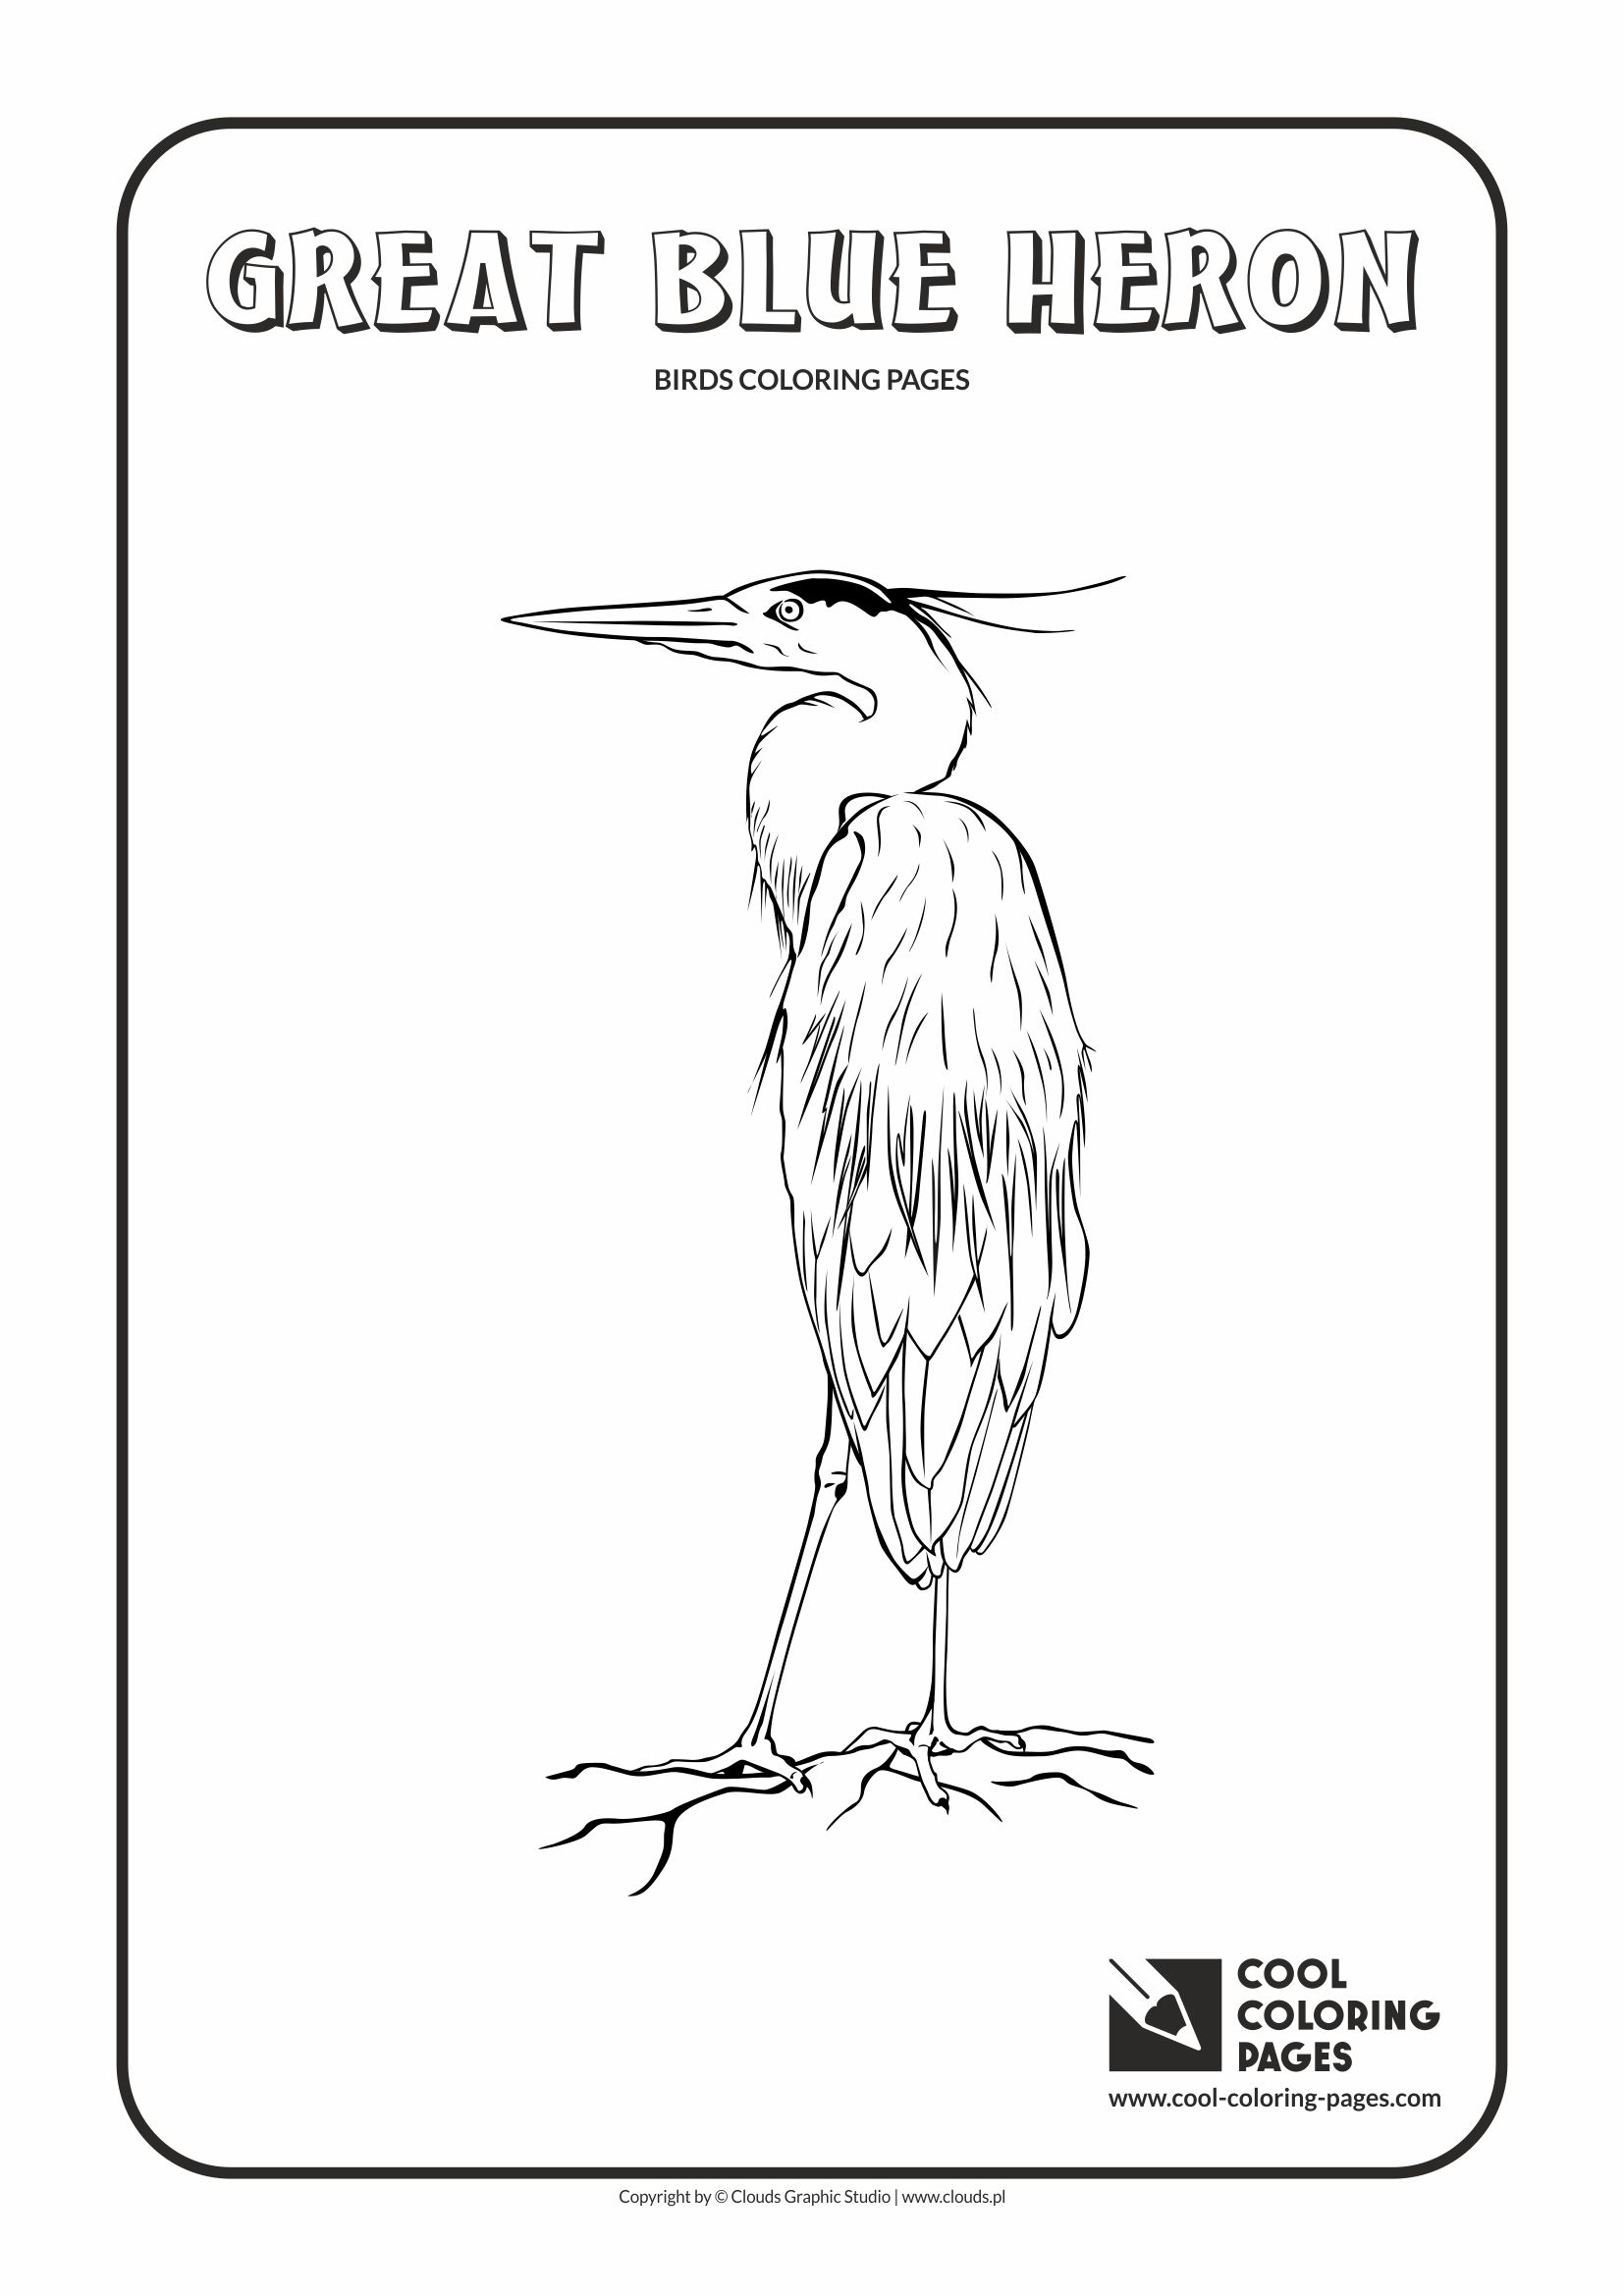 blue heron coloring pages - photo#27